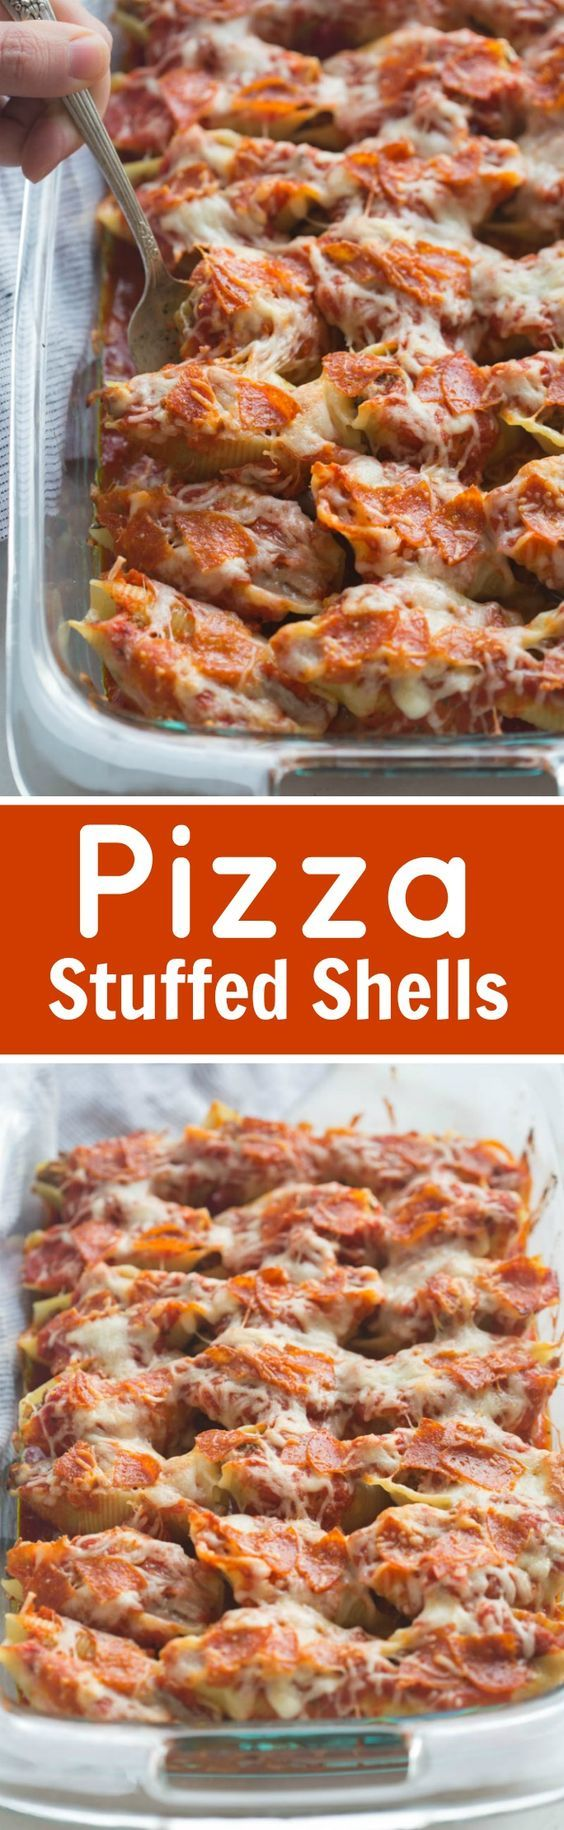 """Pizza Stuffed Shells with tender noddles filled with a """"pizza supreme"""" mixture and layered with sauce, pepperoni and cheese."""